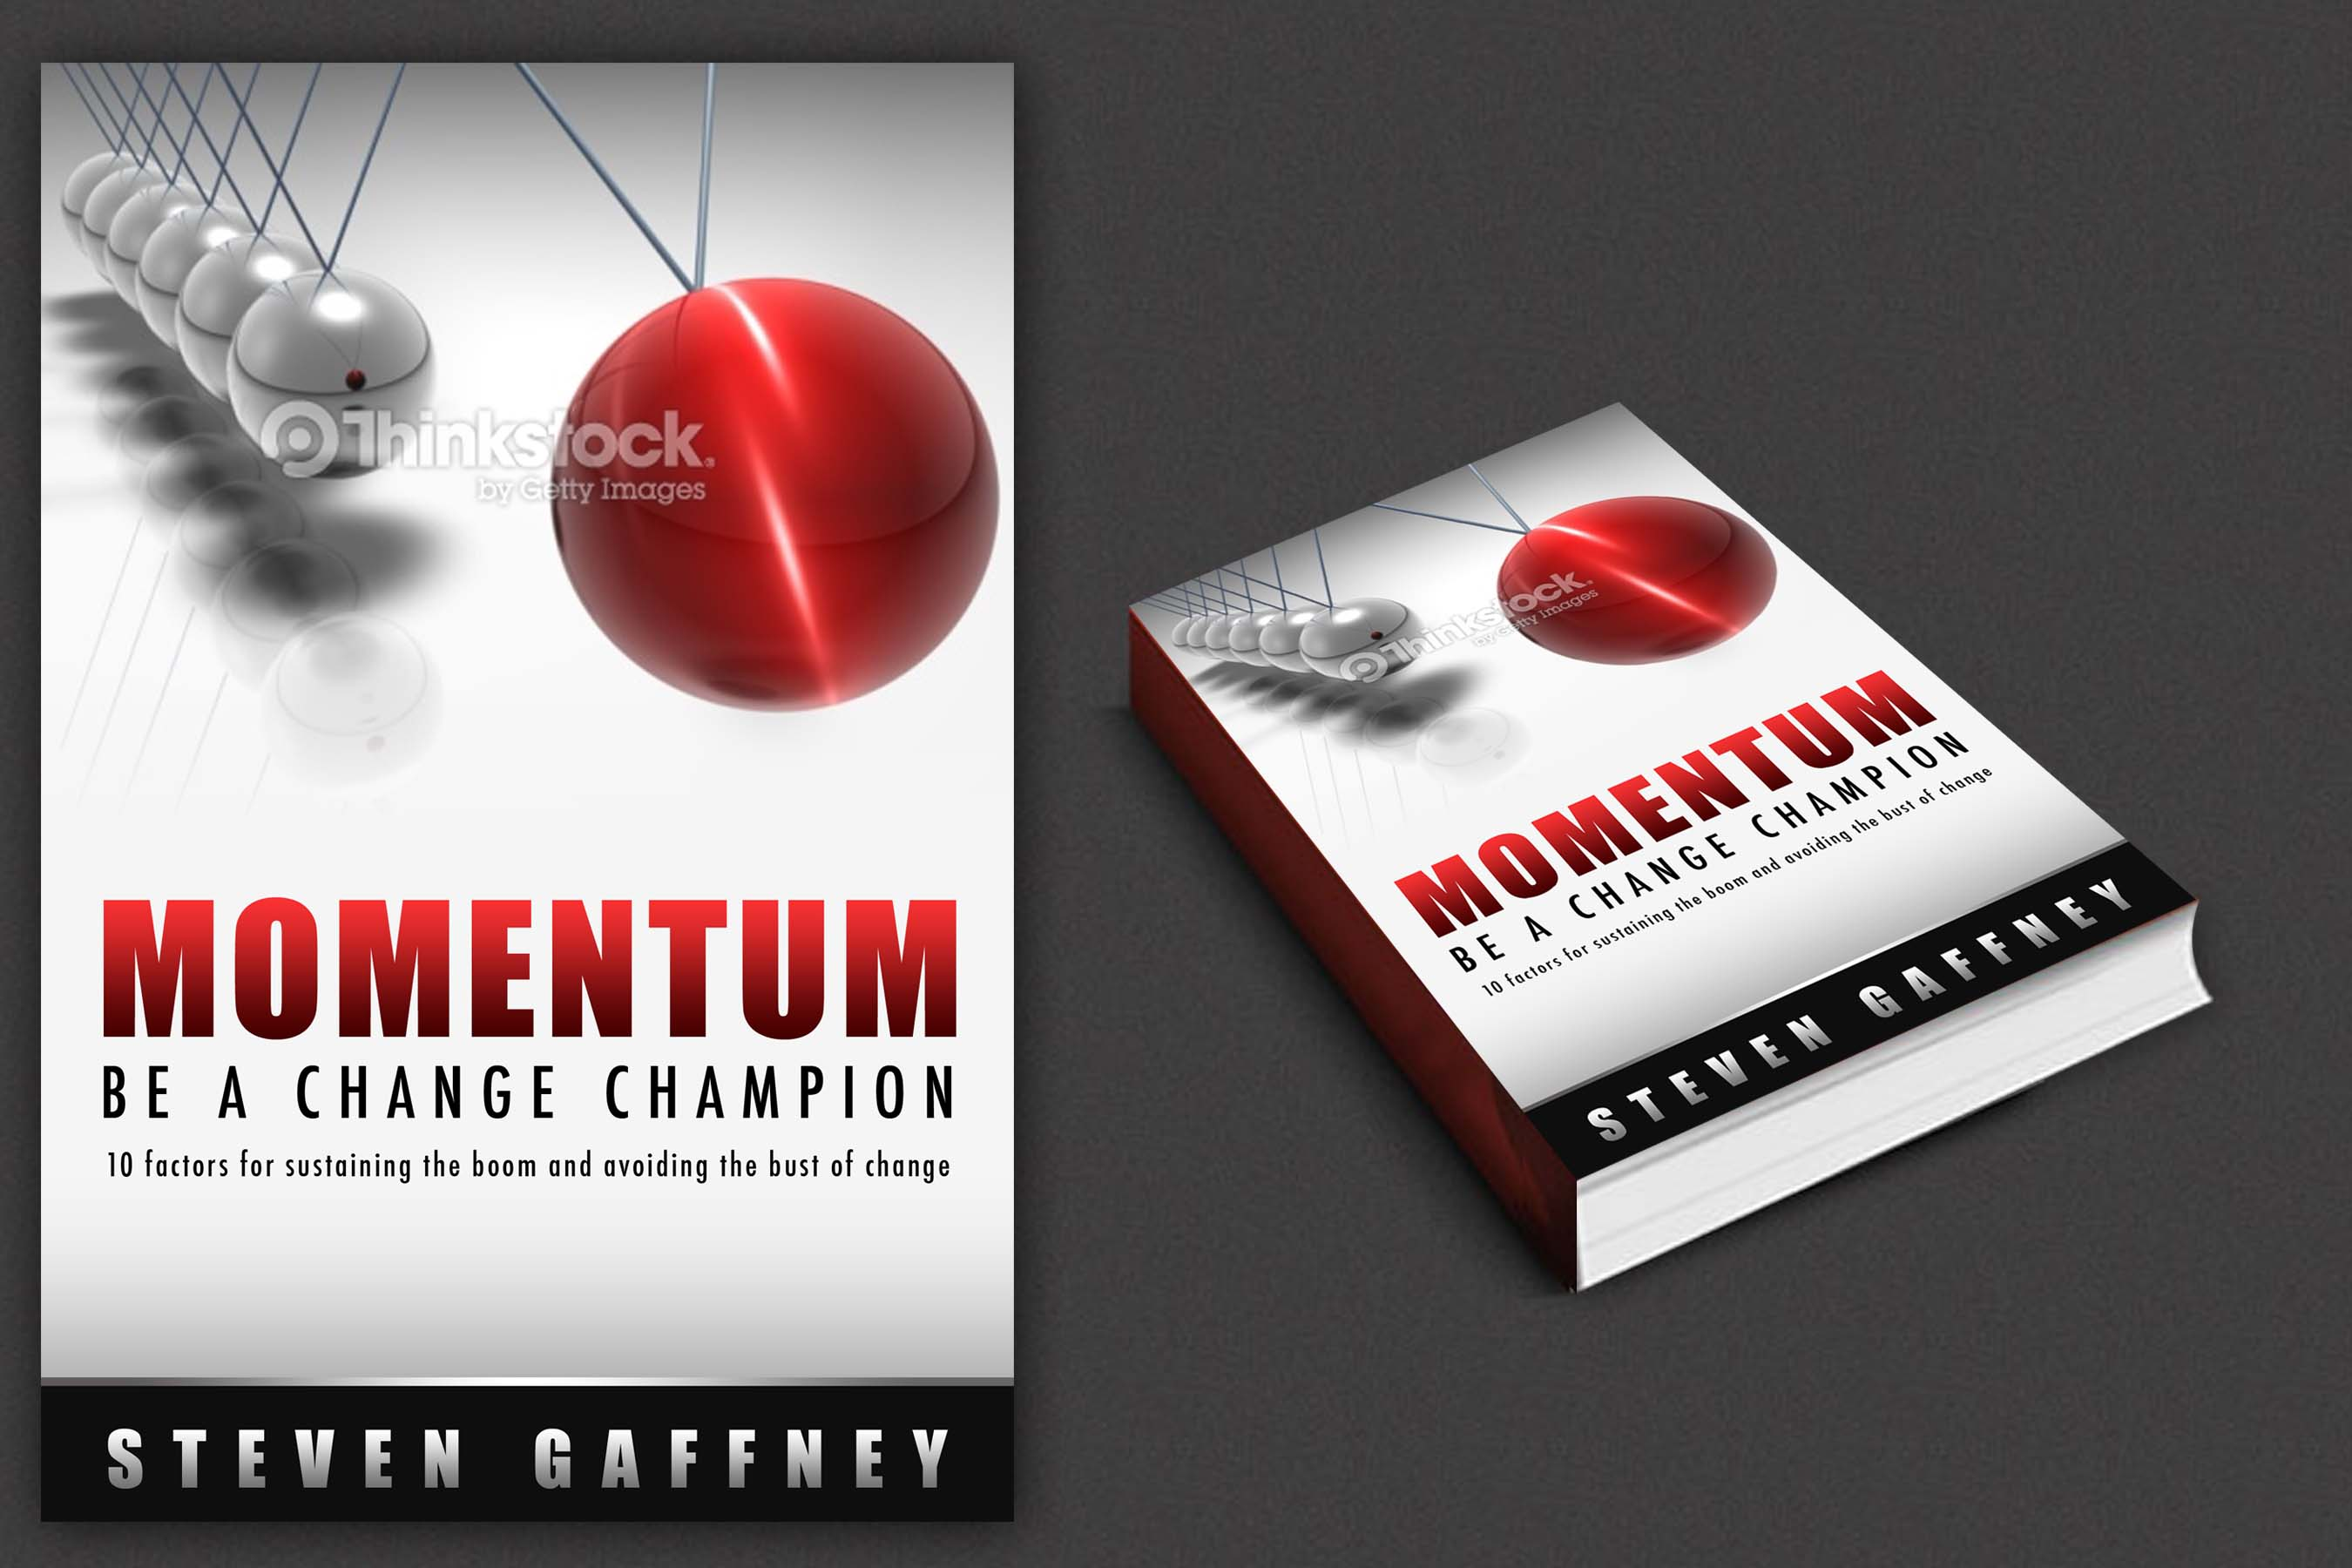 Book Cover for Steven Gaffney - Consulting